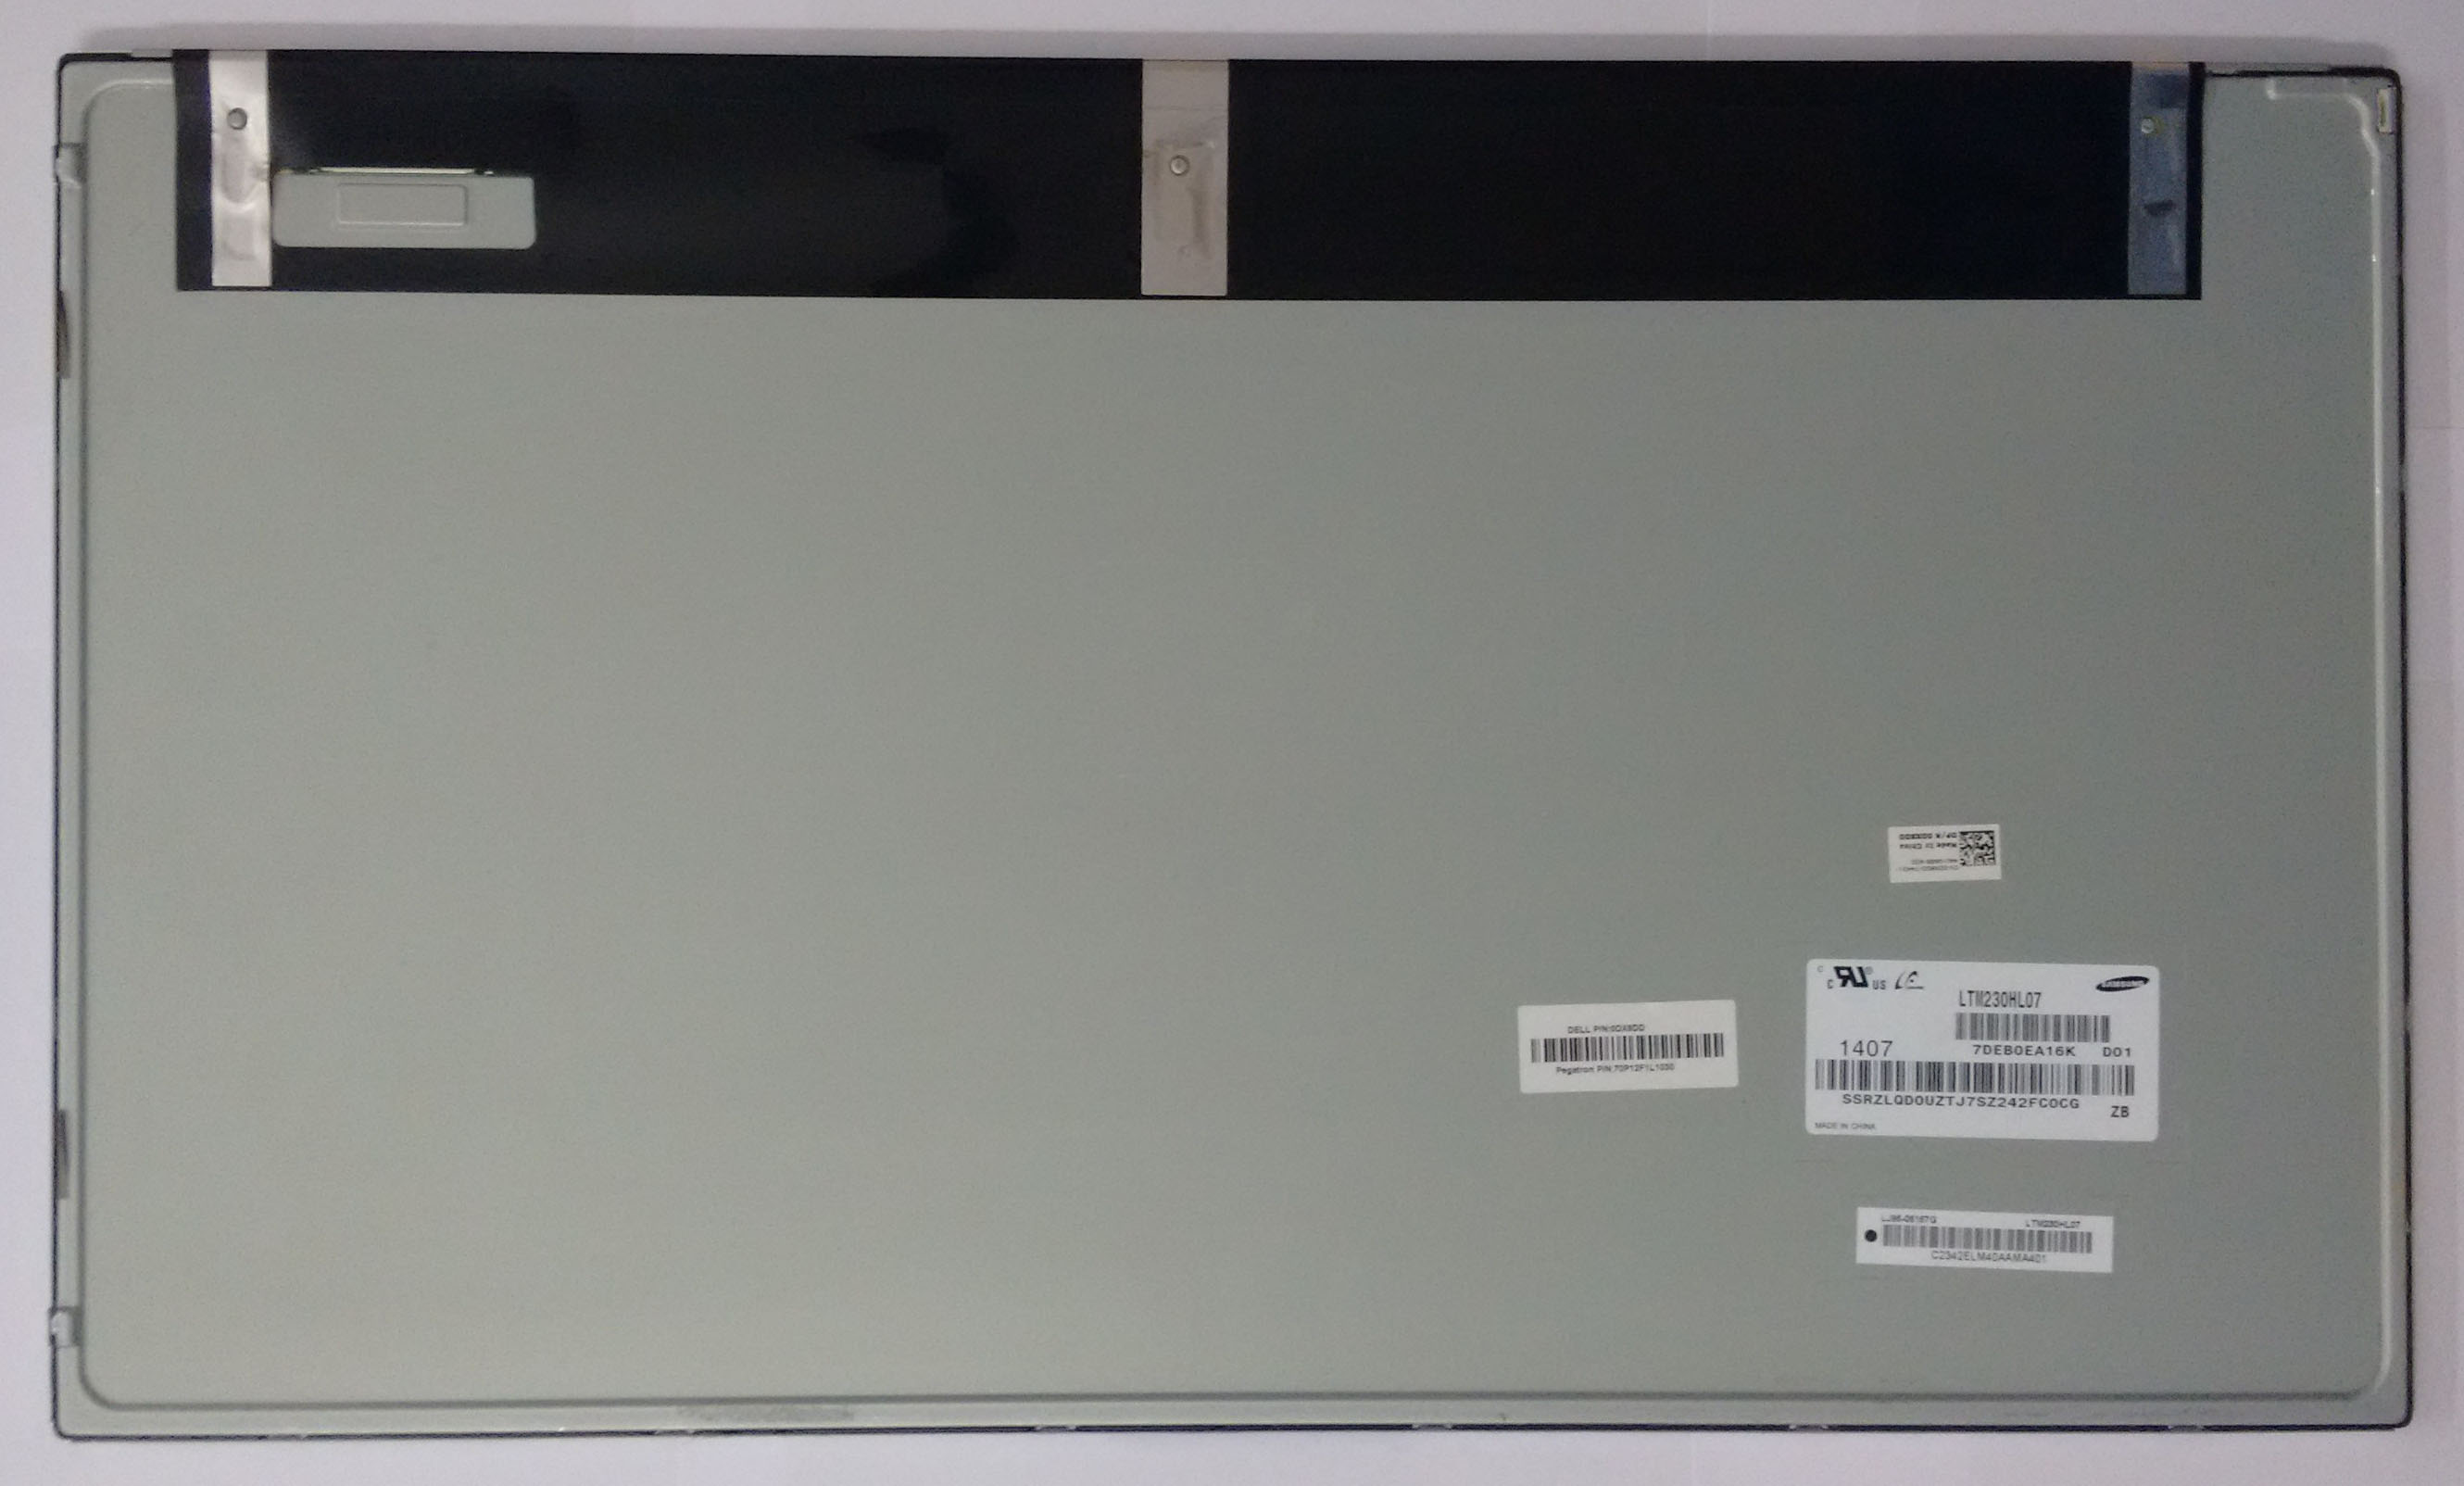 Buy Samsung Ltm230hl07 23 Tft Lcd Screen Online In India 85179026